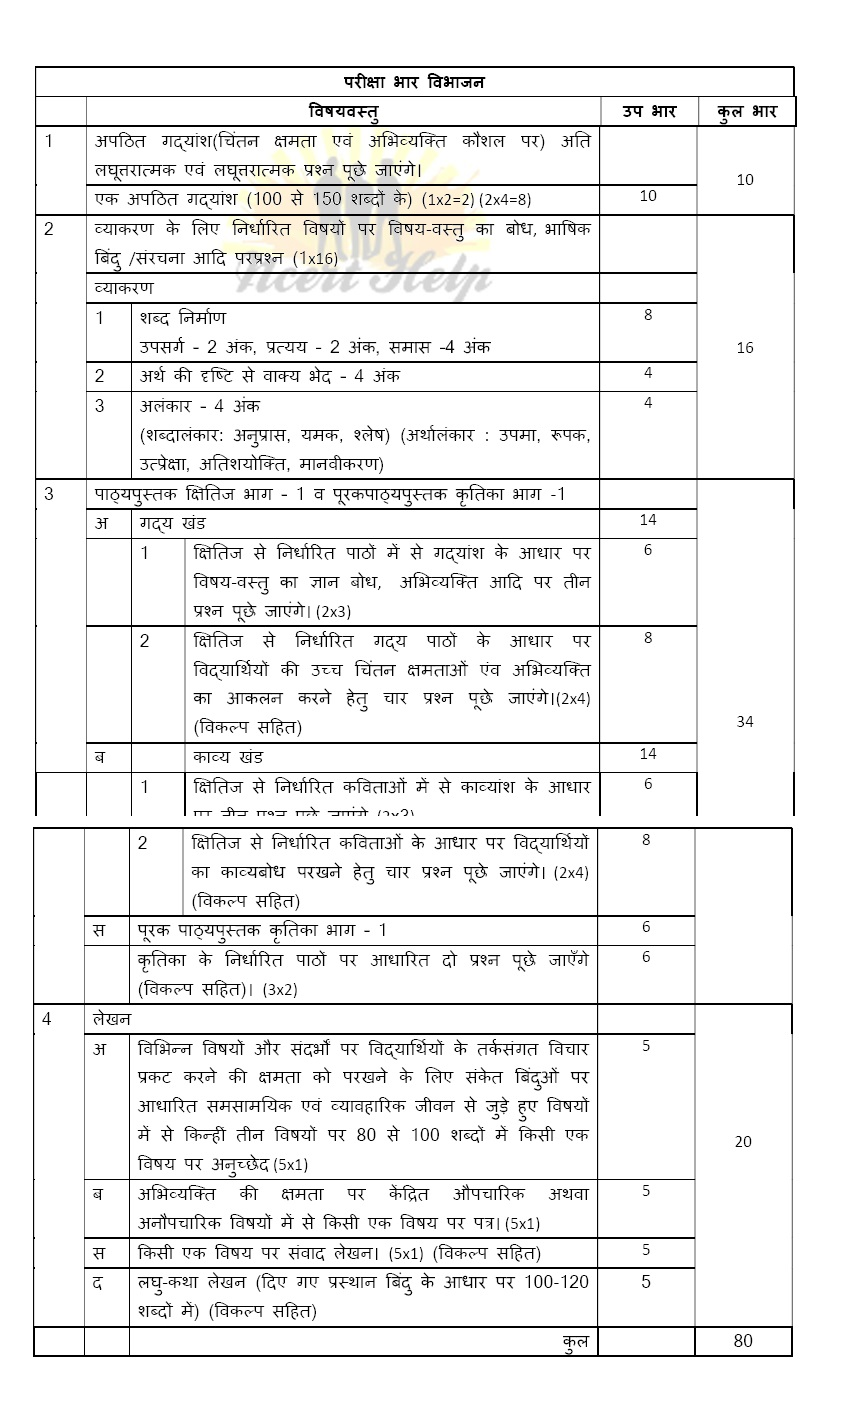 CBSE Syllabus for Class 9 Hindi Course 9th NCERT Pdf 2020 - 2021